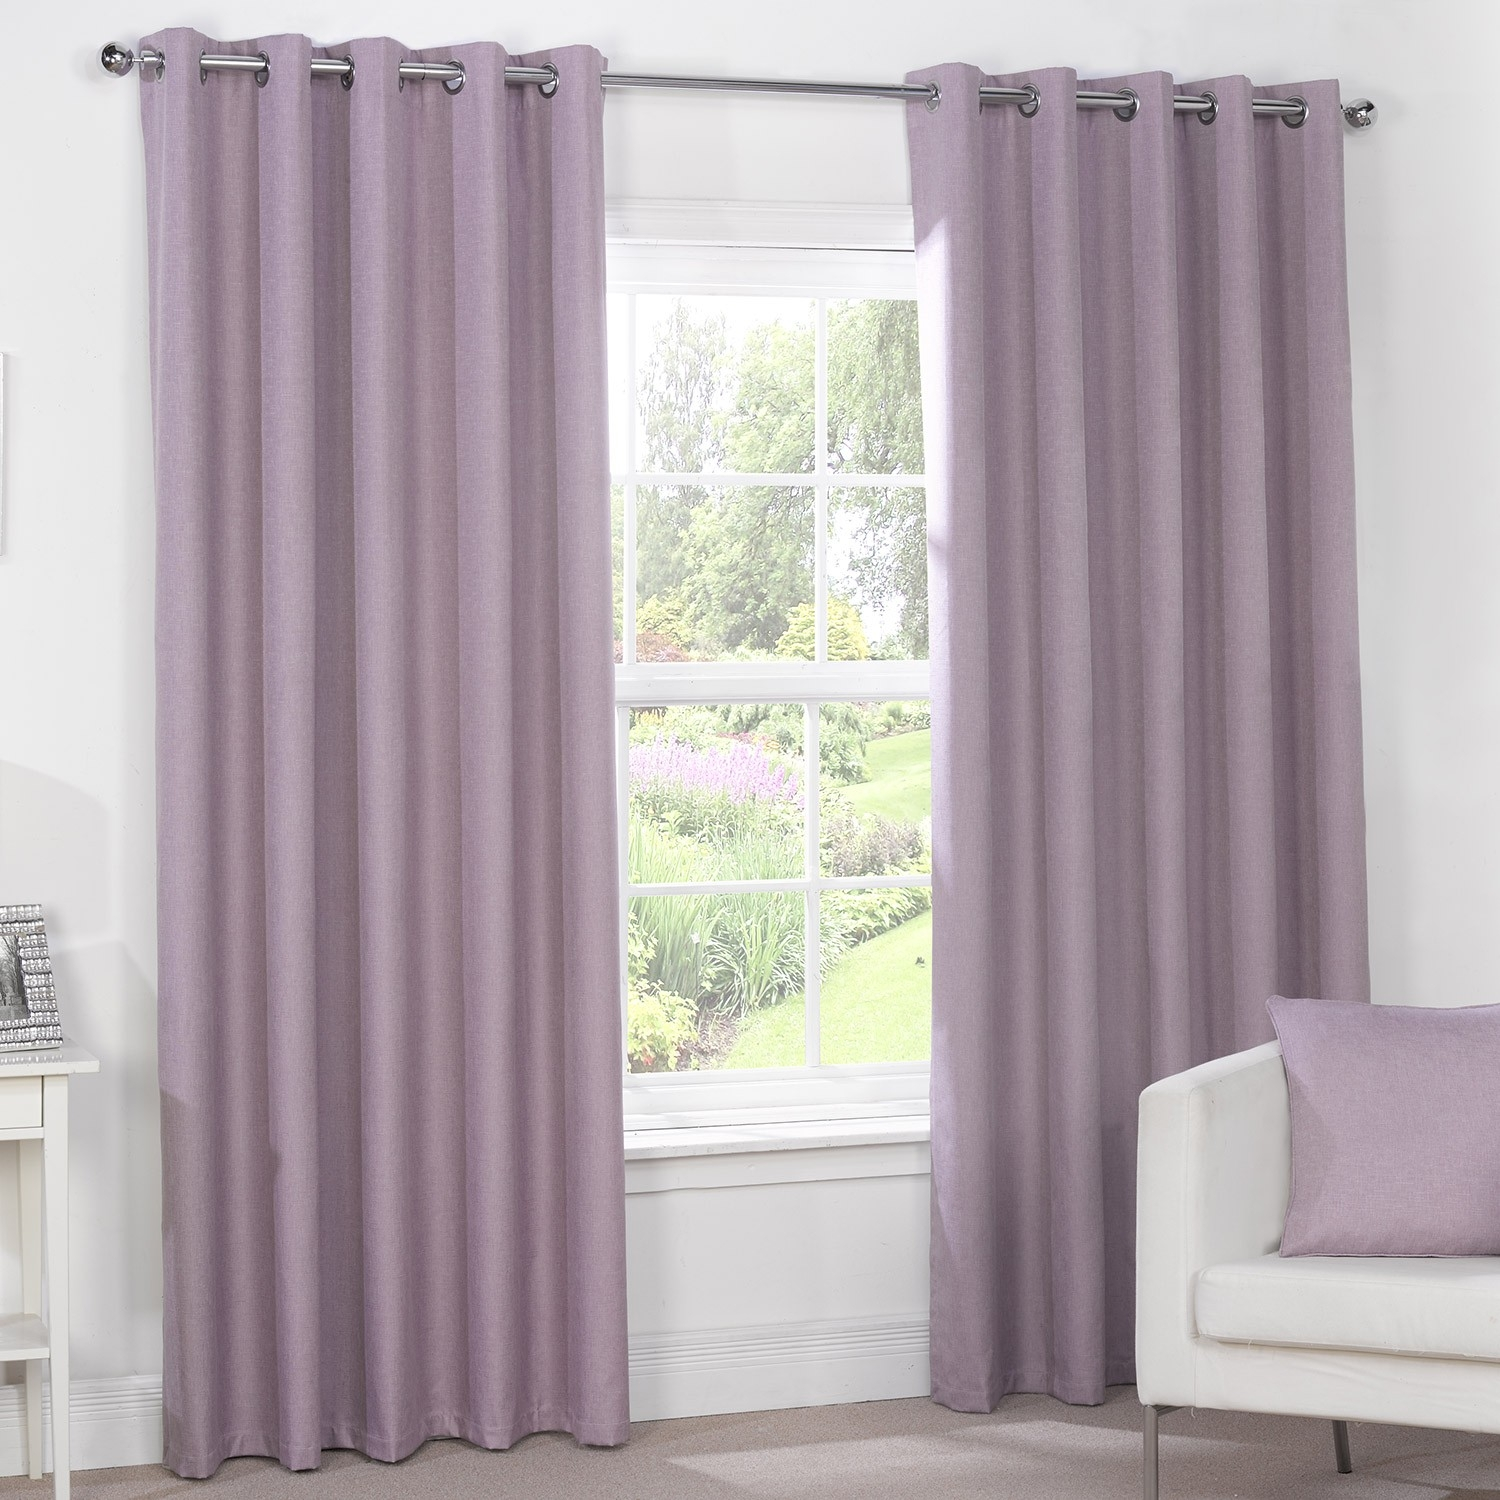 Surprising Photograph Of Unbearablycute Curtains Curtains Wow God Regarding Mauve Sheer Curtains (View 11 of 25)